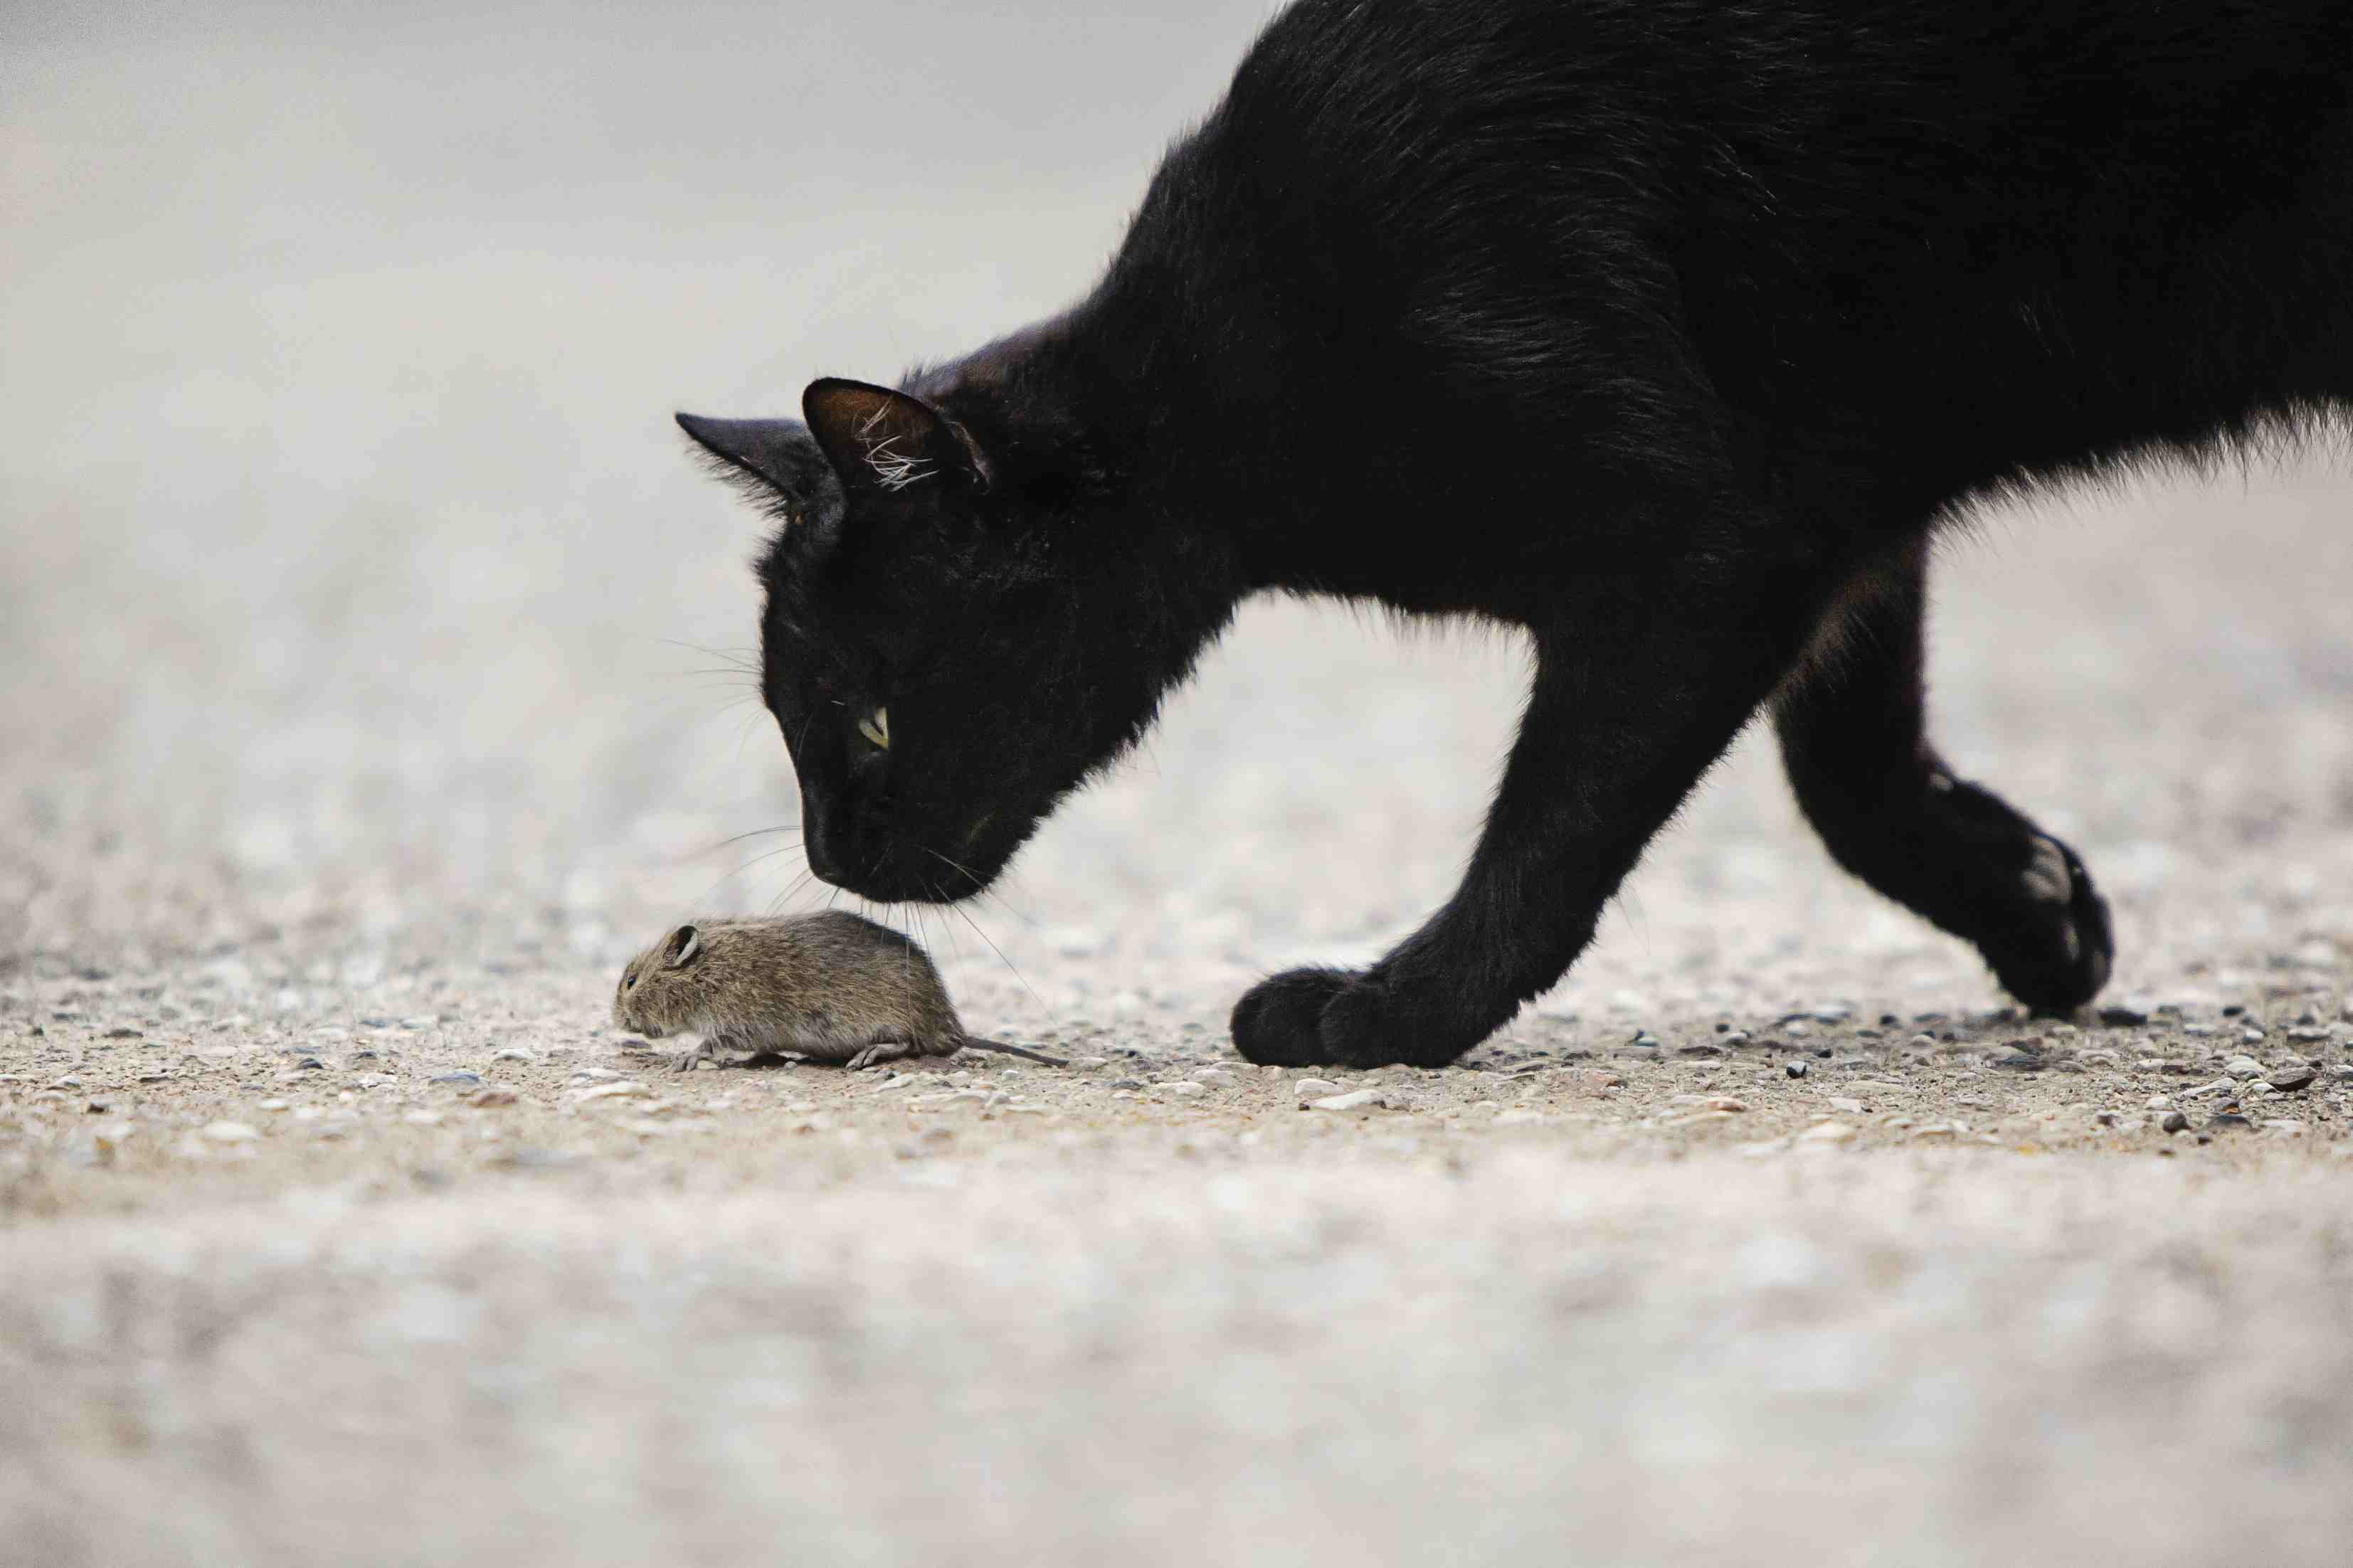 Black cat sniffing at a mouse.